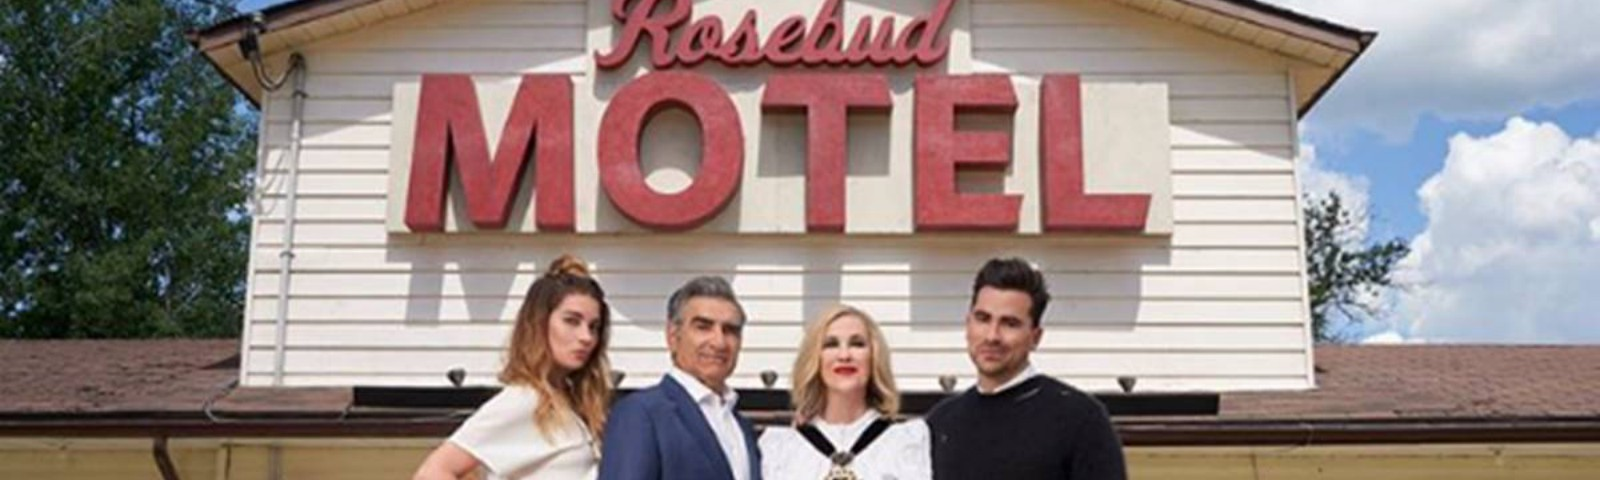 The Rose family (Alexis, Johnny, Moira, David) pose in front of their new home in Schitt's Creek, the Rosebud Motel.